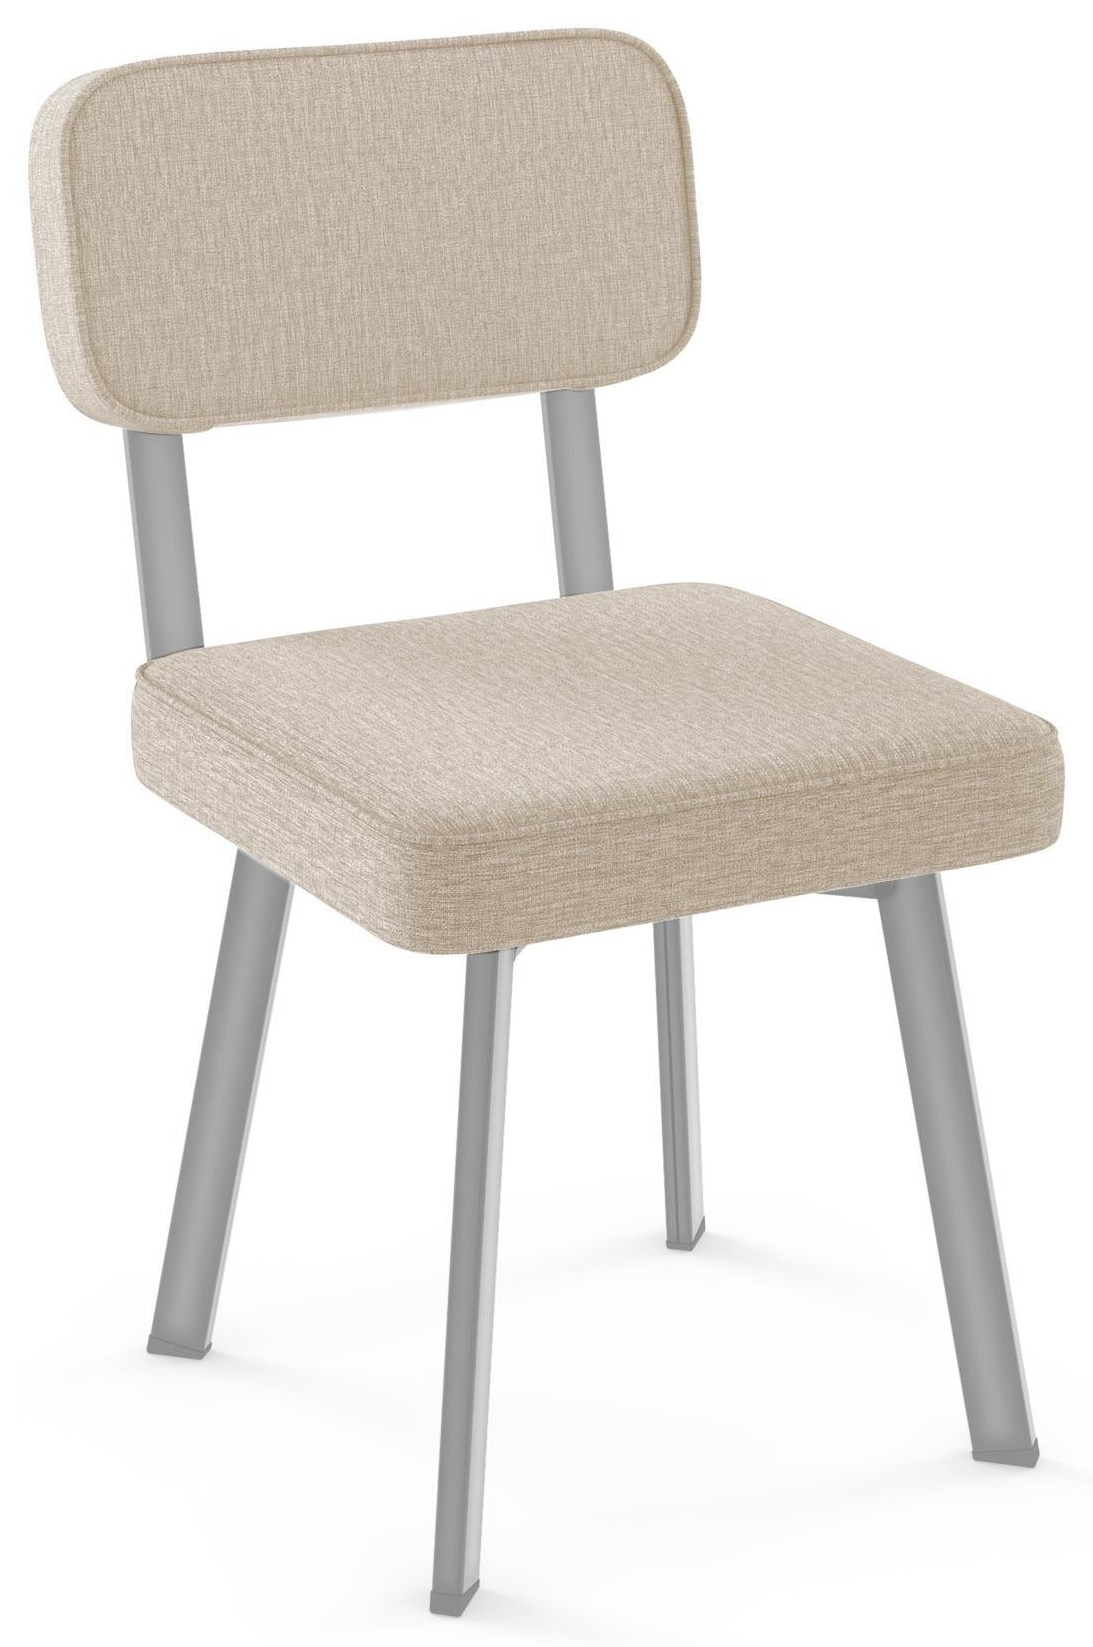 Brixton Chair by Amisco at Red Knot